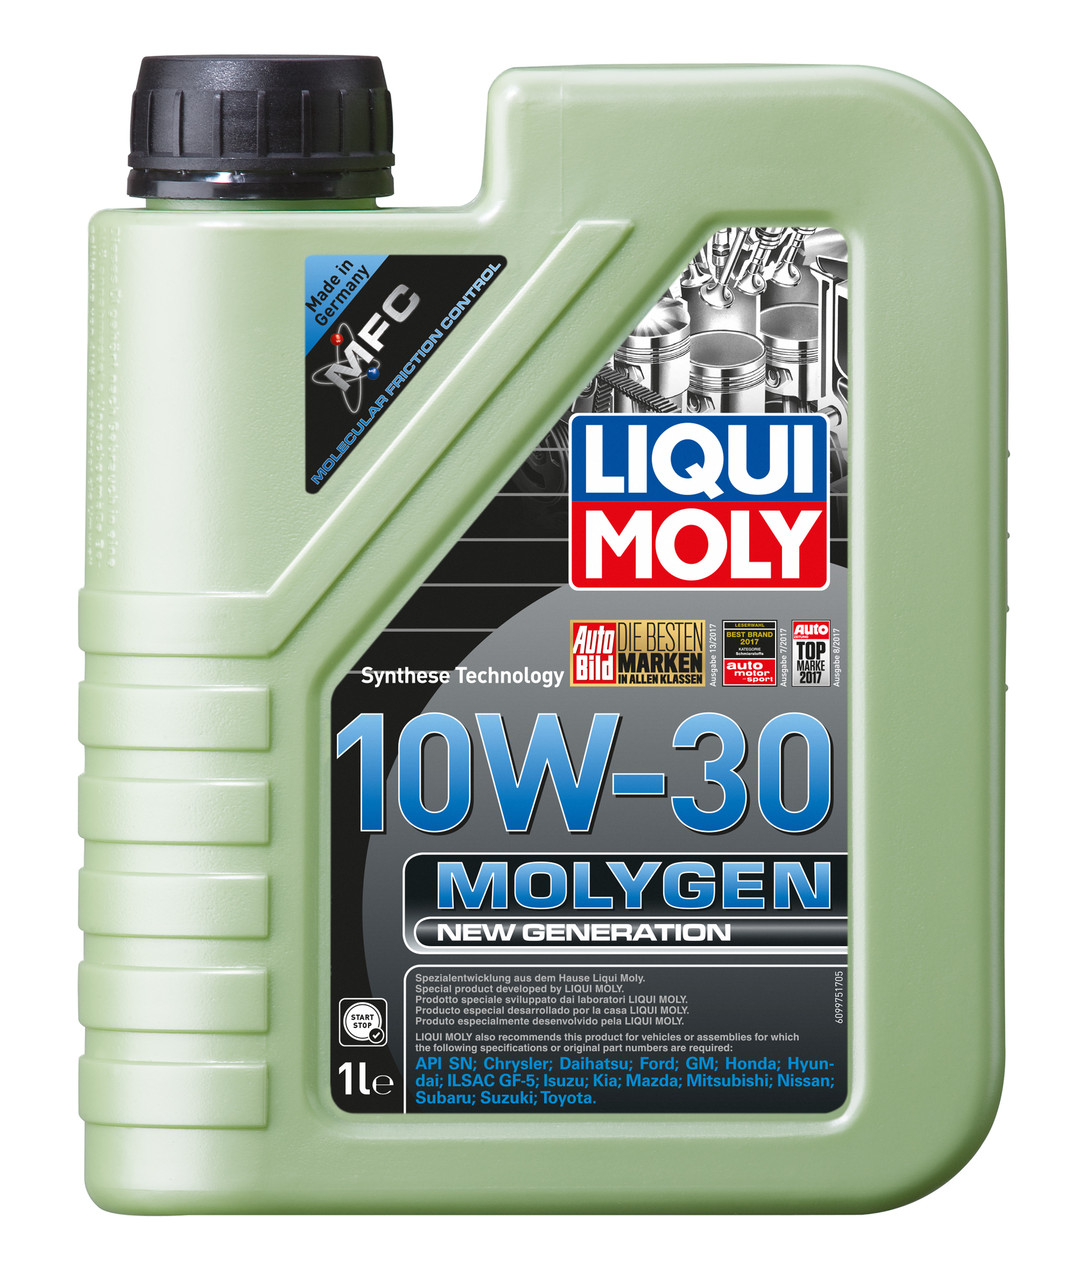 Моторное масло Molygen New Generation 10W-30, 1L, LIQUI MOLY